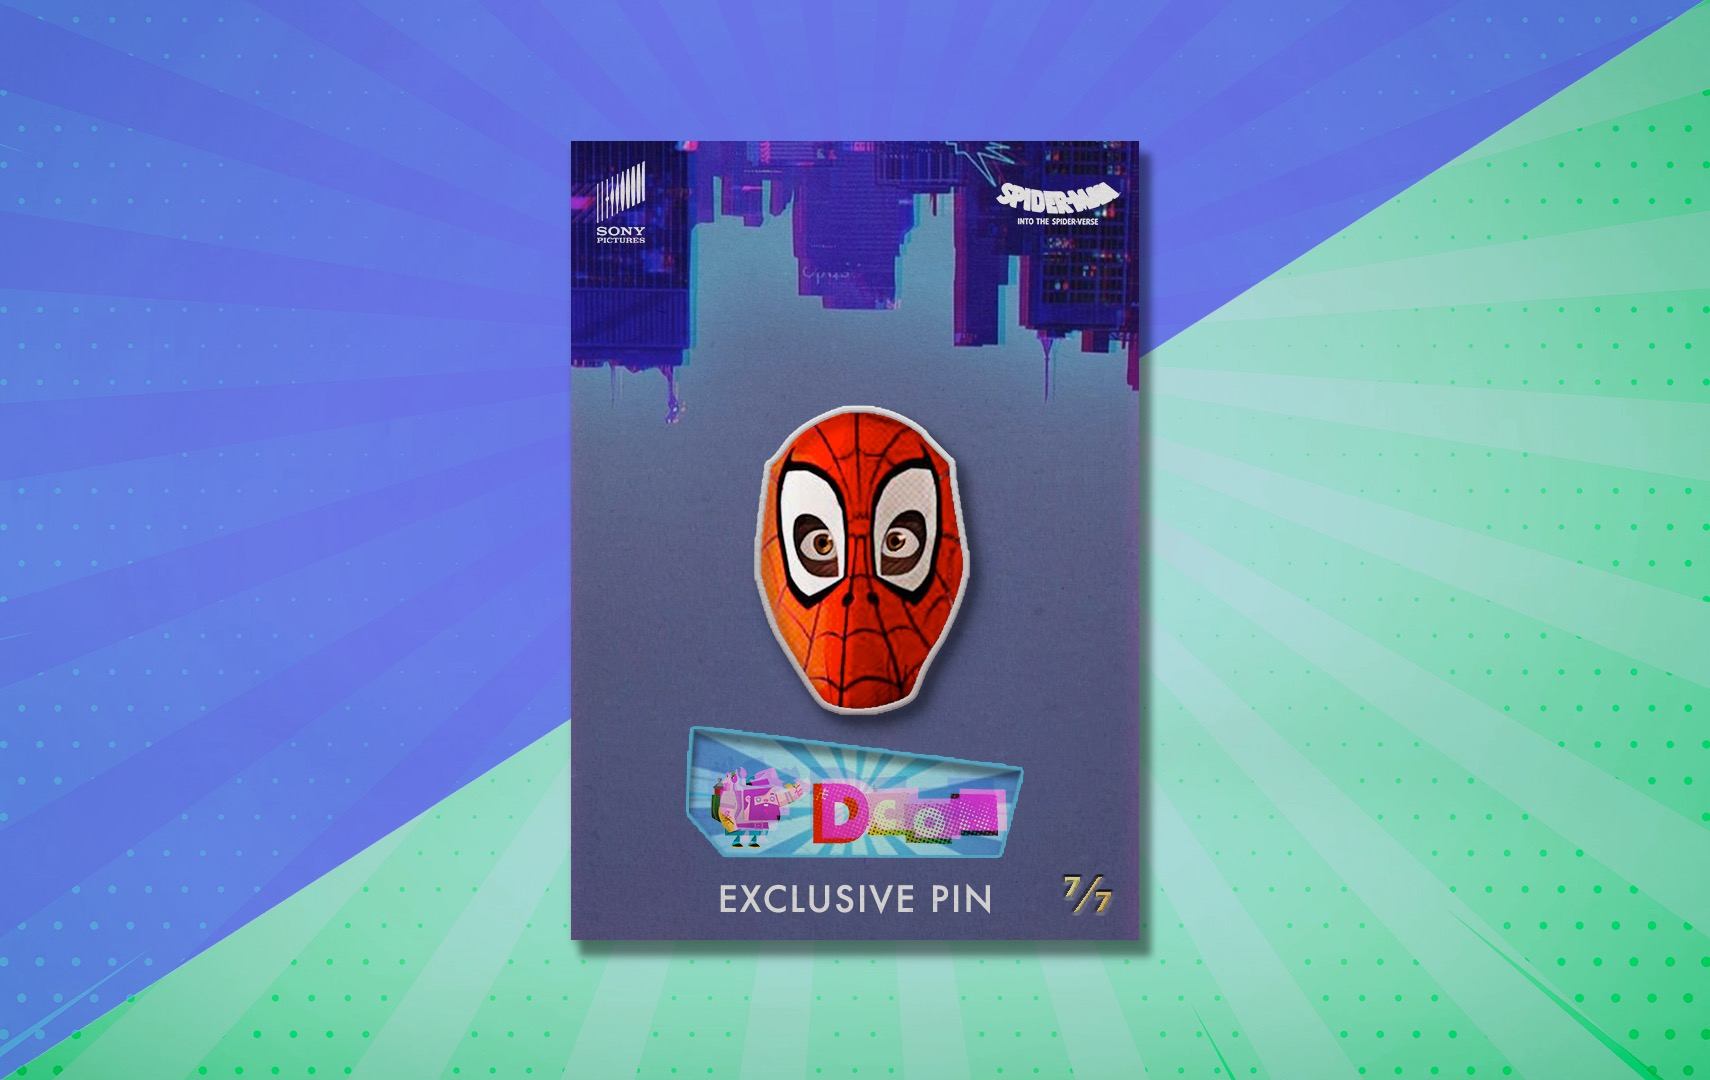 DC_DCon_Deck_Spiderverse_Pin_07.jpeg